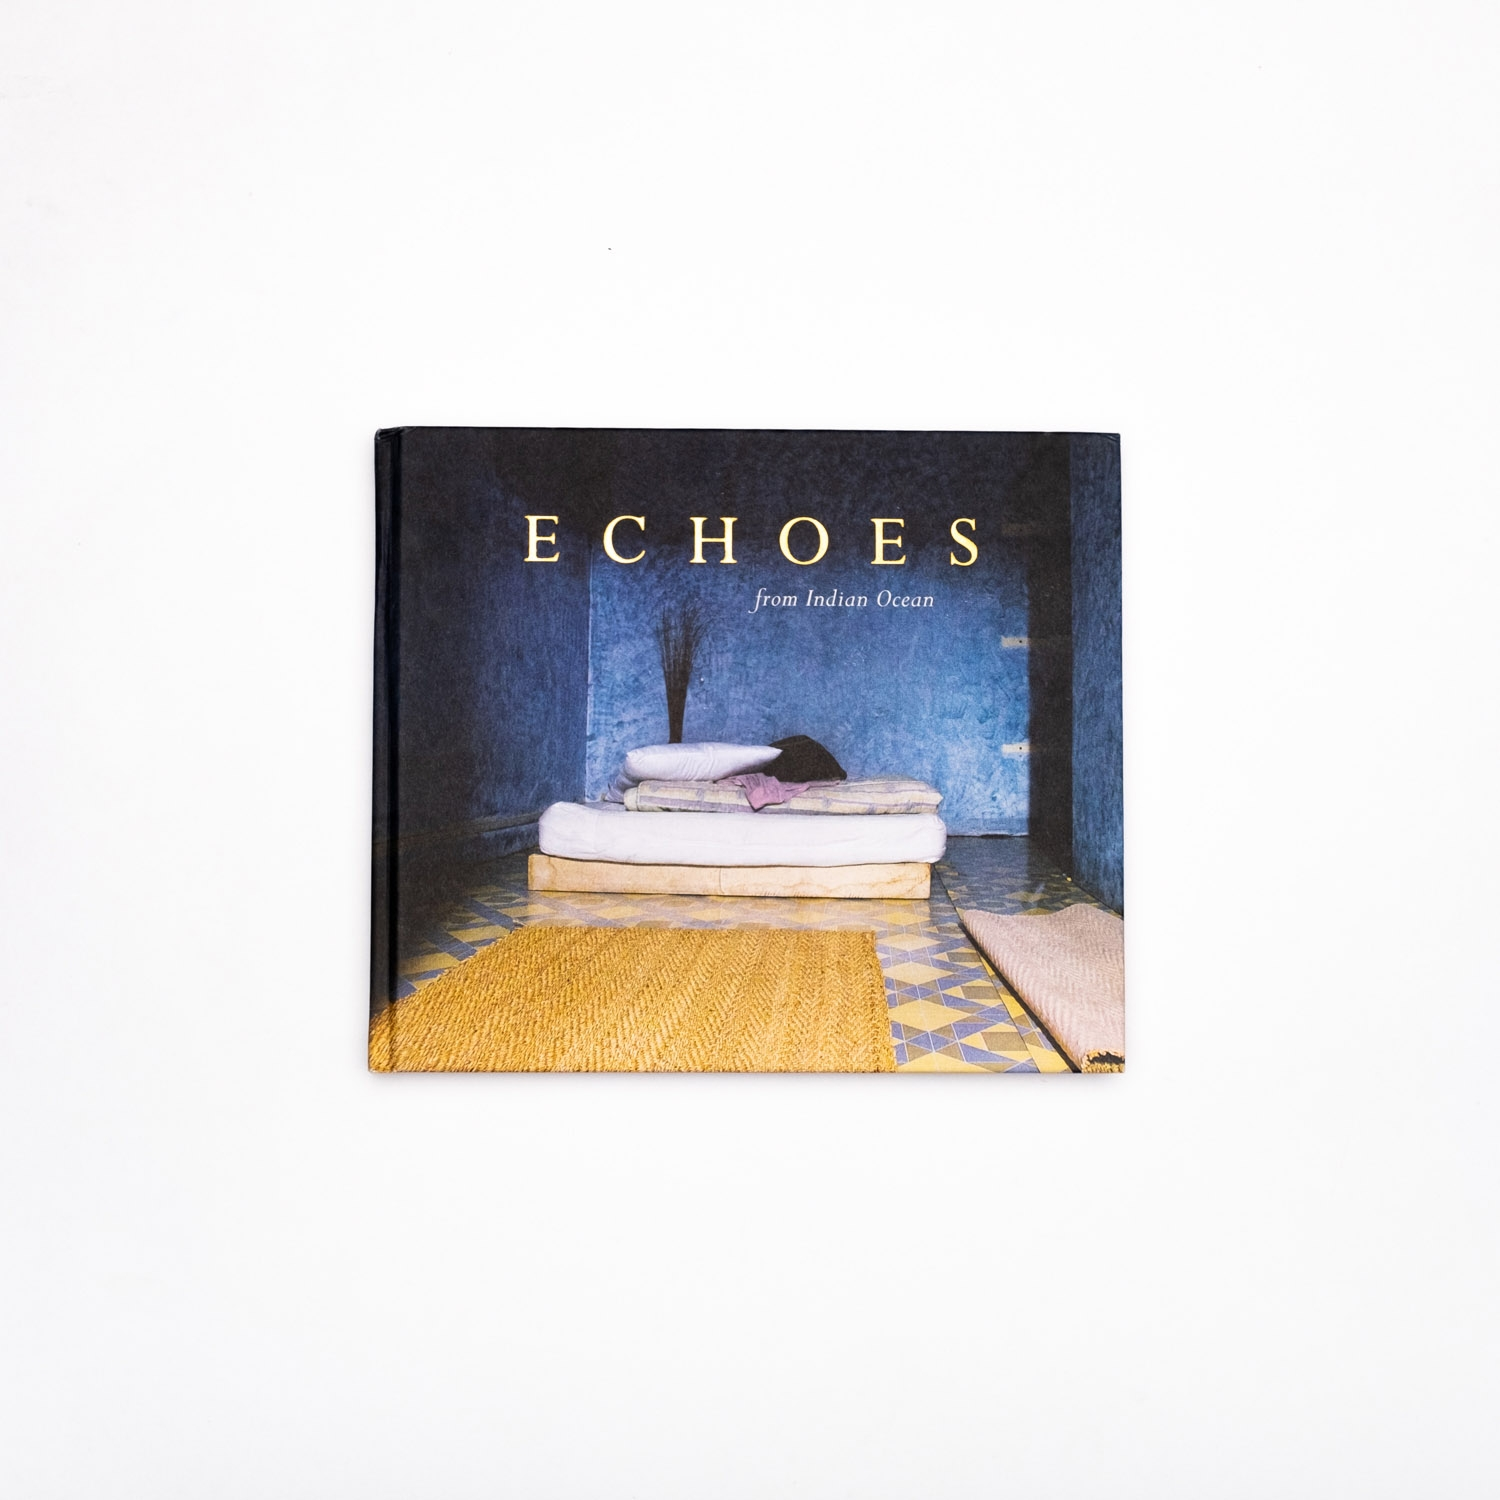 Echoes (from Indian Ocean) - Hardcover